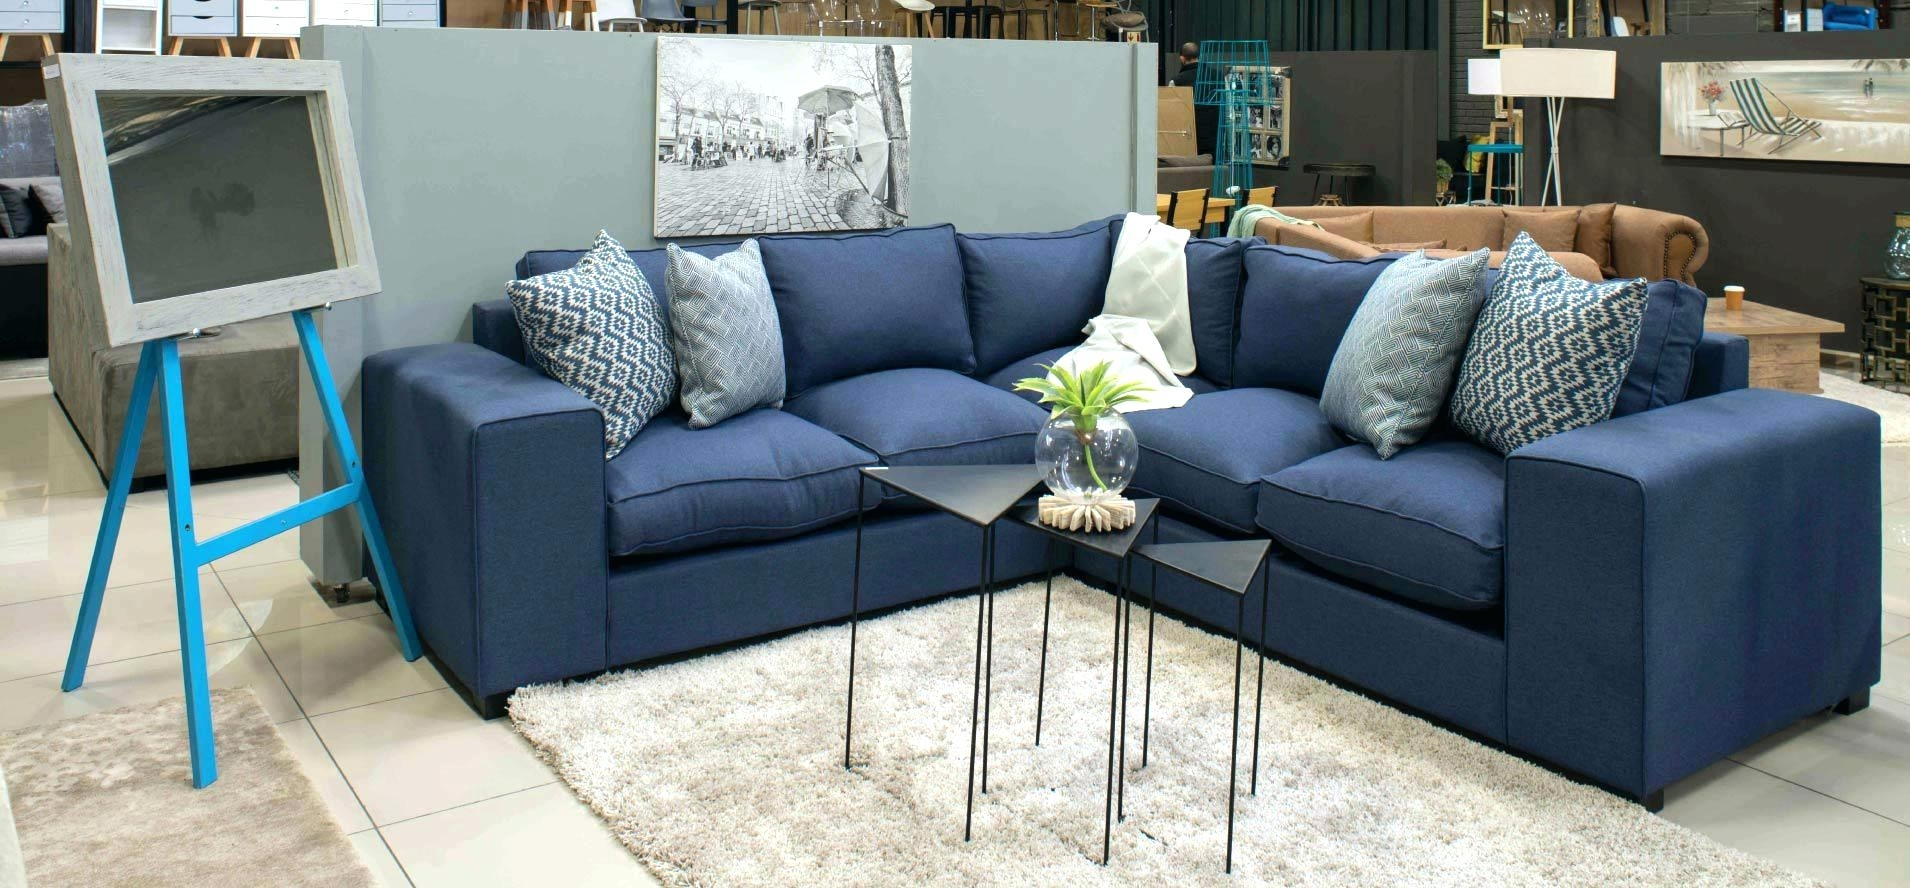 Sofas Houston Sectional Couch Tx Sleeper Sofa – Ncgeconference Intended For Houston Sectional Sofas (Image 10 of 10)